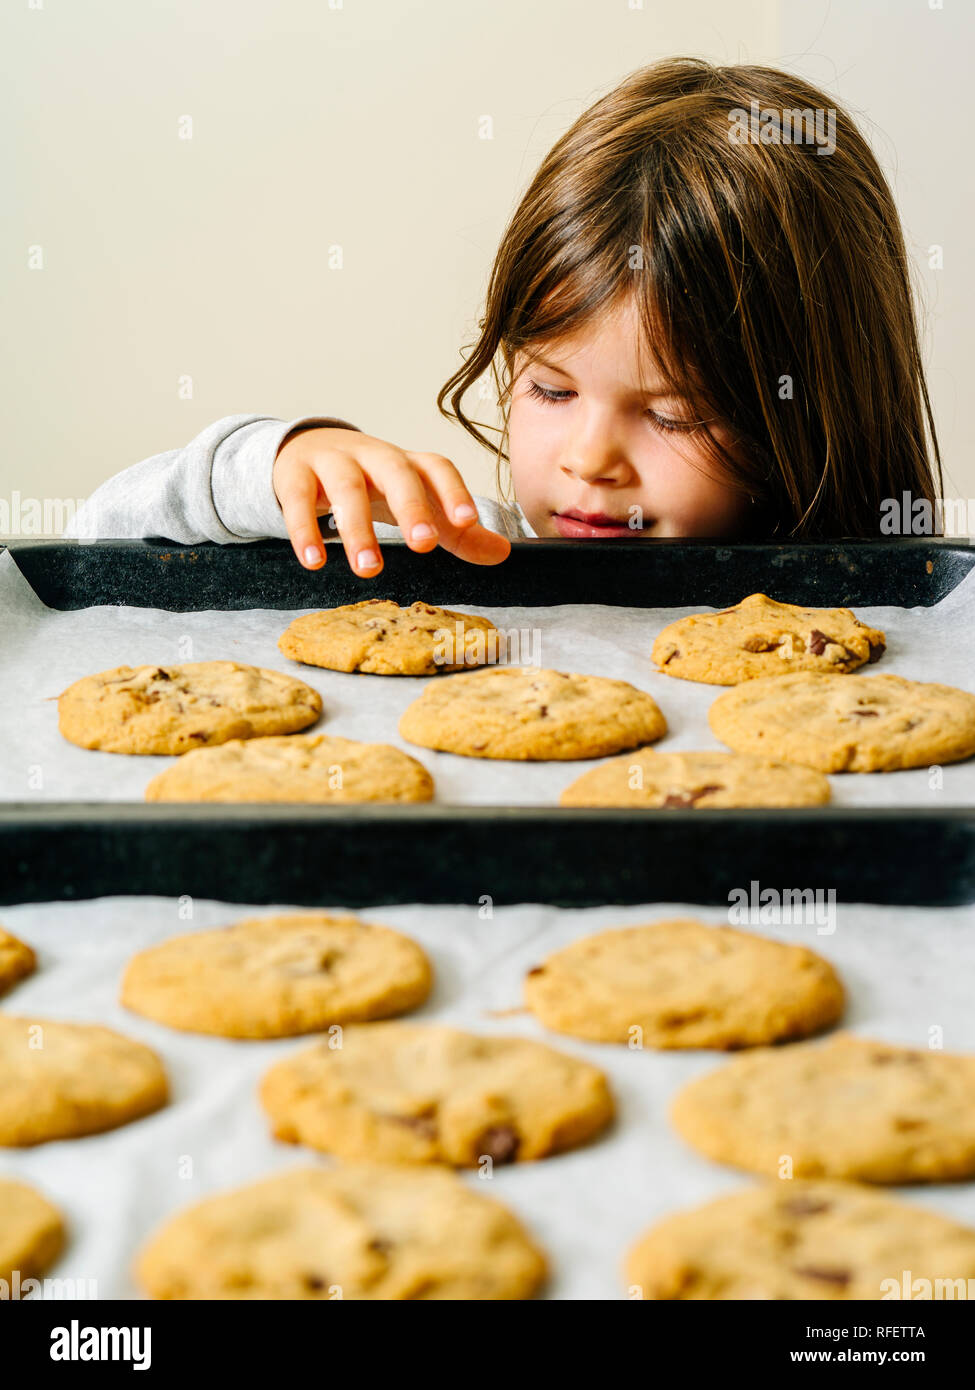 Photo of a young girl grabbing a warm chocolate chip cookie from a baking tray. - Stock Image